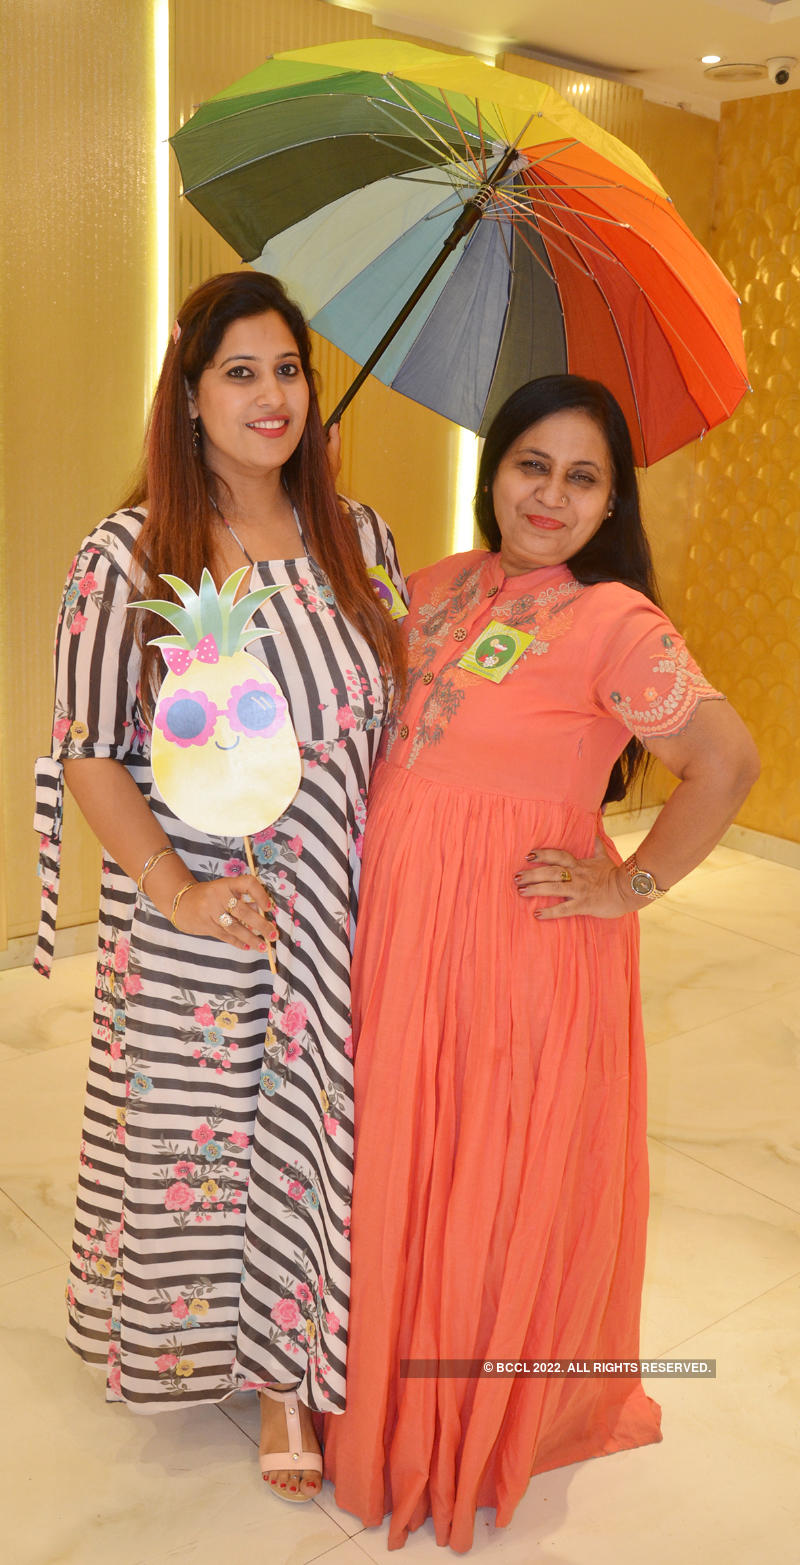 Kanpur ladies have a gala time at an event